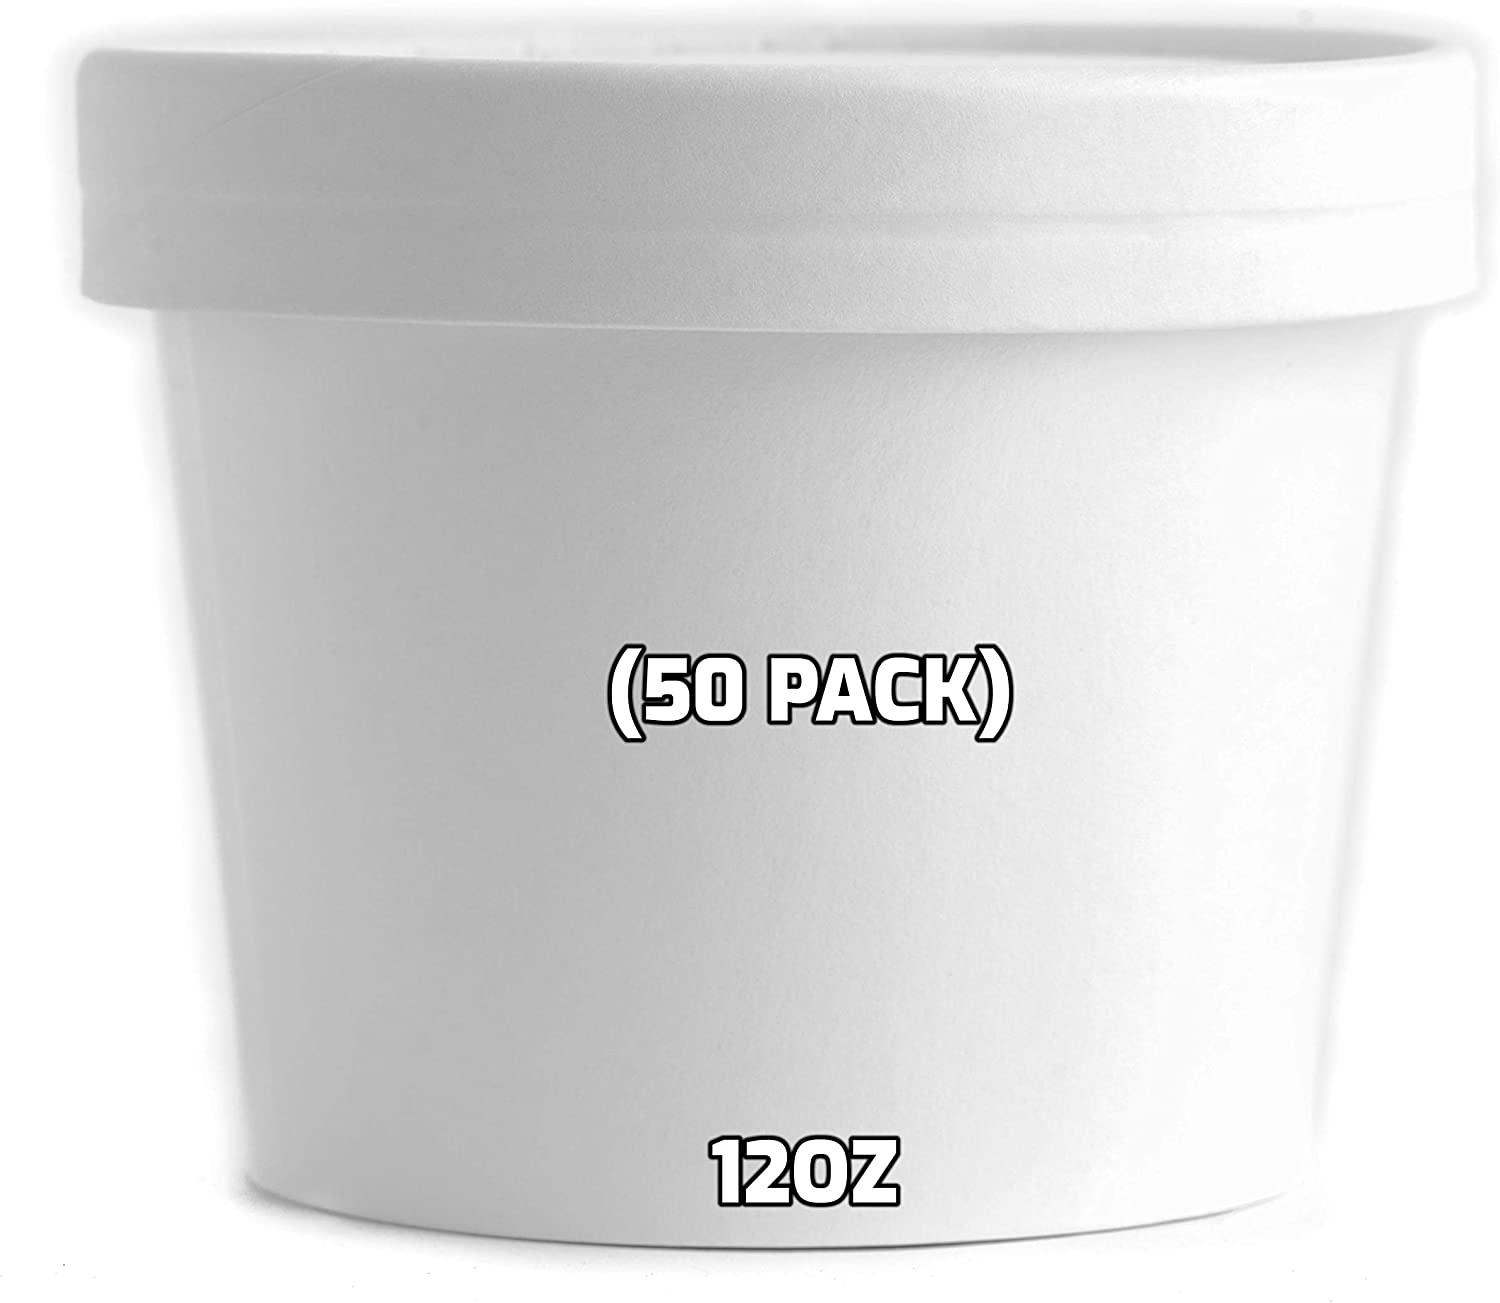 12 oz Disposable White Paper Soup Containers [50 Count] - Half Pint Ice Cream Containers, Frozen Yogurt Cups, Restaurant, Microwavable, Take Out, to Go Deli Containers, Recyclable